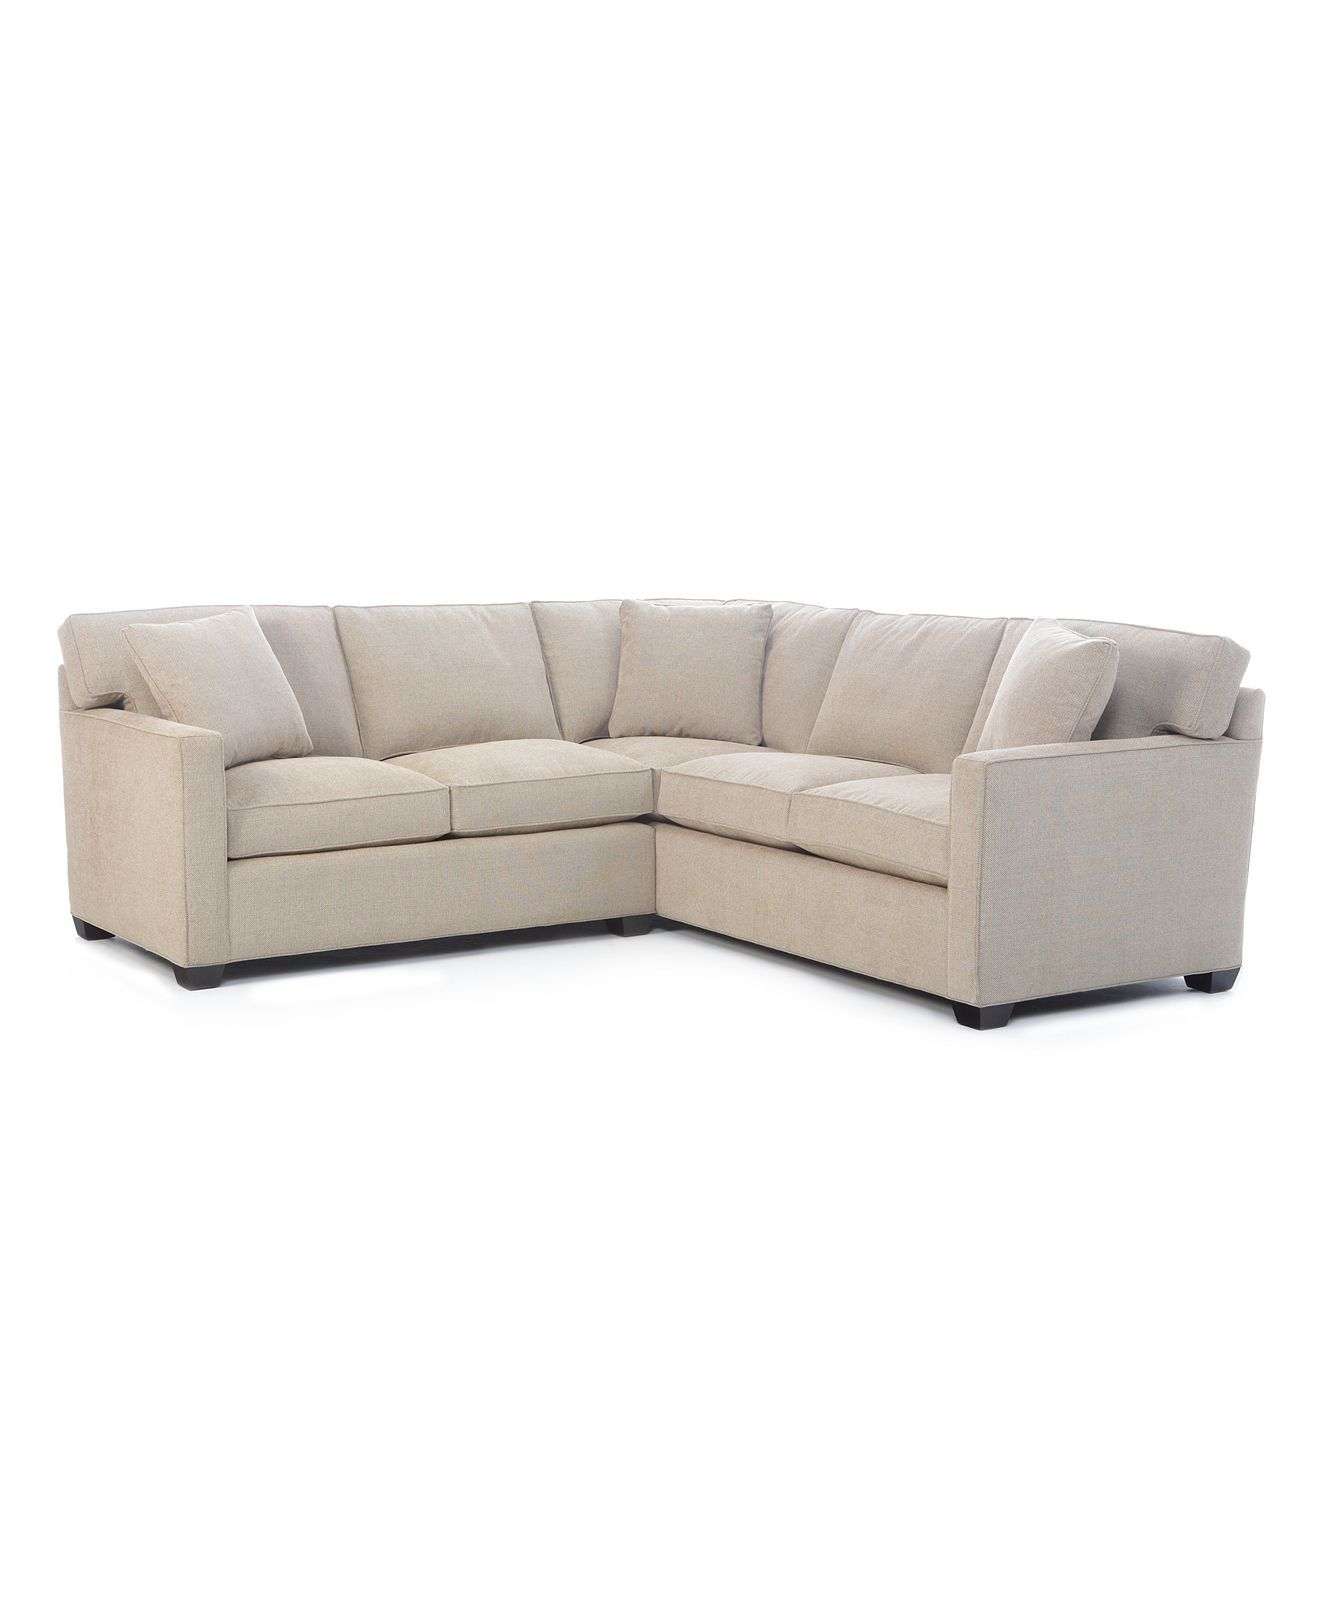 sectional Klaussner Furniture Cruze sectional Ivory